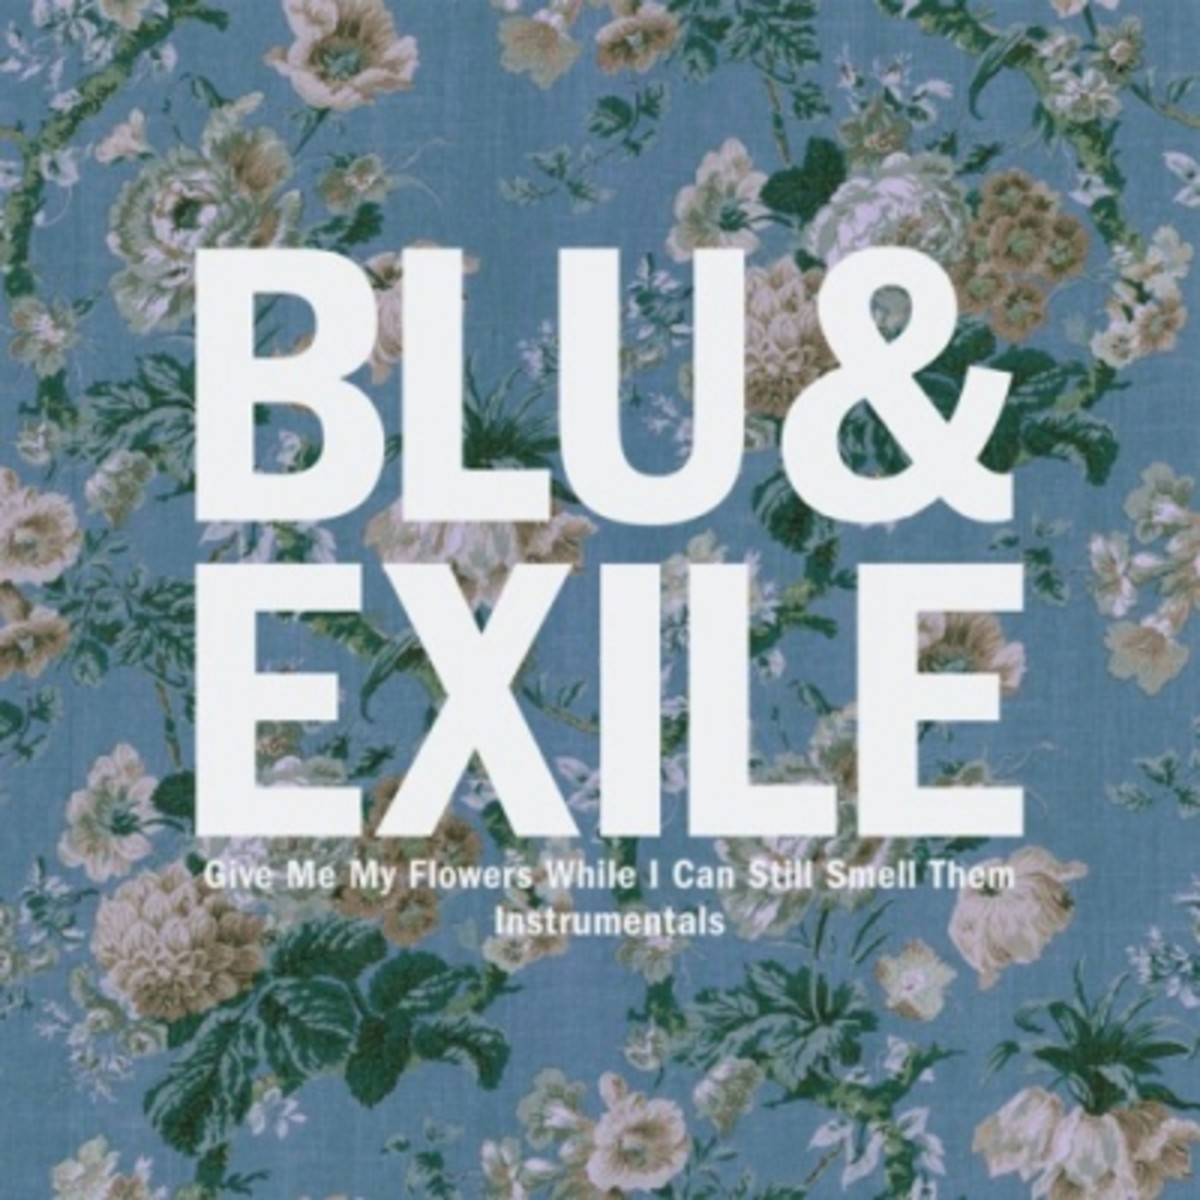 blu-exile-give-me-my-flowers-instrumentals.jpg